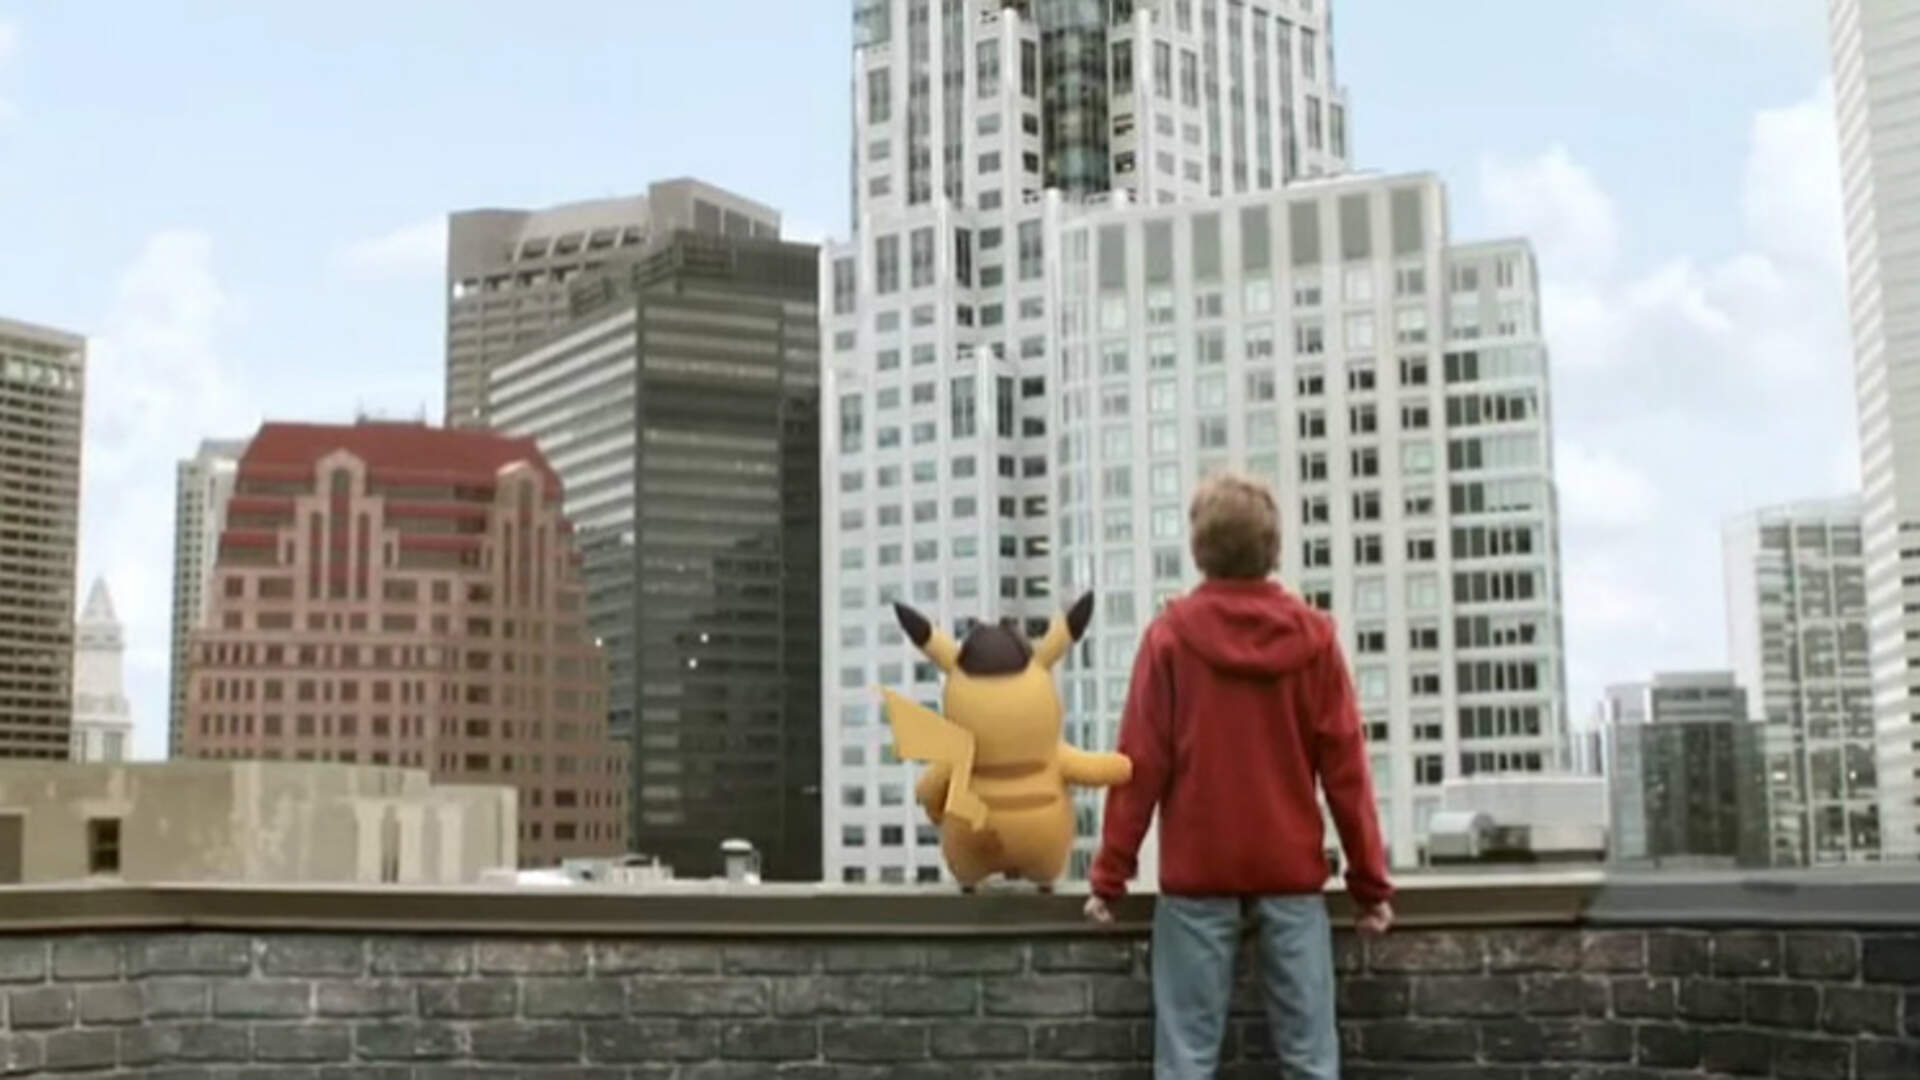 Pokemon Live-Action is Happening, as Studios Fight for the Rights